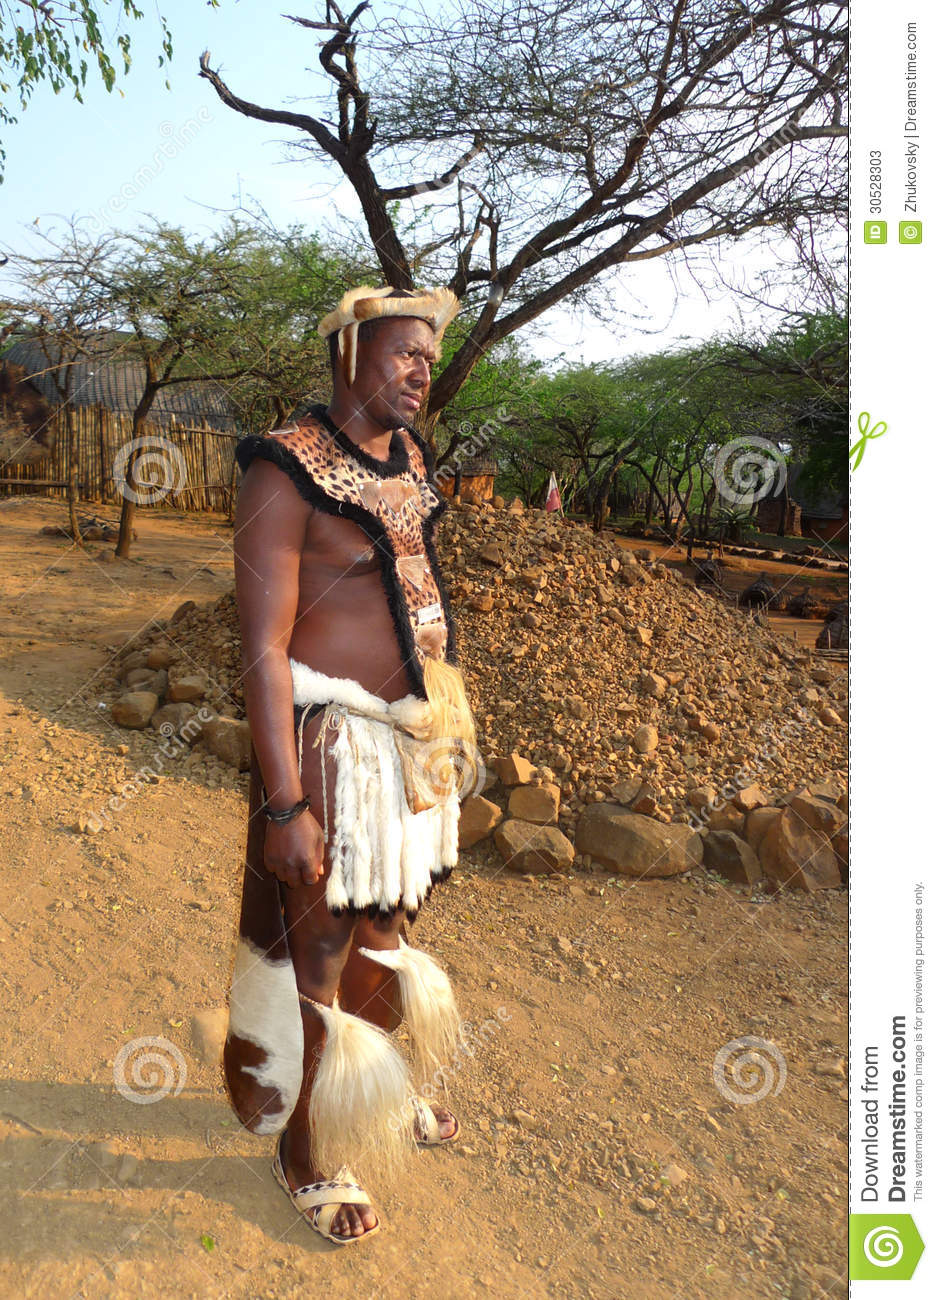 Zulu Shakaland Zulu warrior at the Great Kraal in Shakaland Zulu Village, Soth Africa